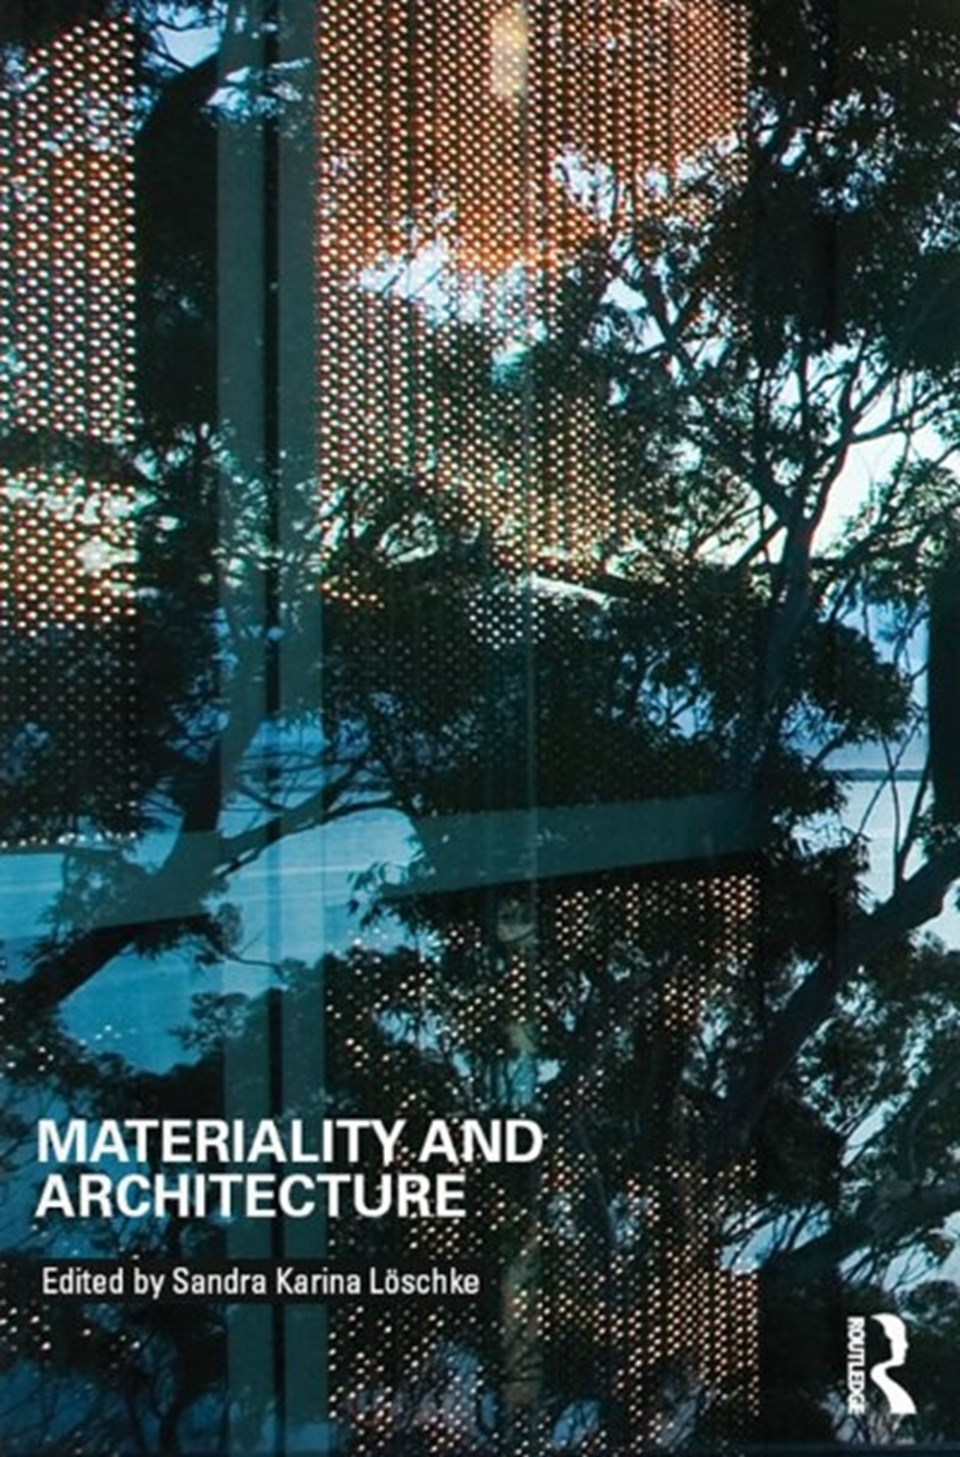 Materiality & Architecture